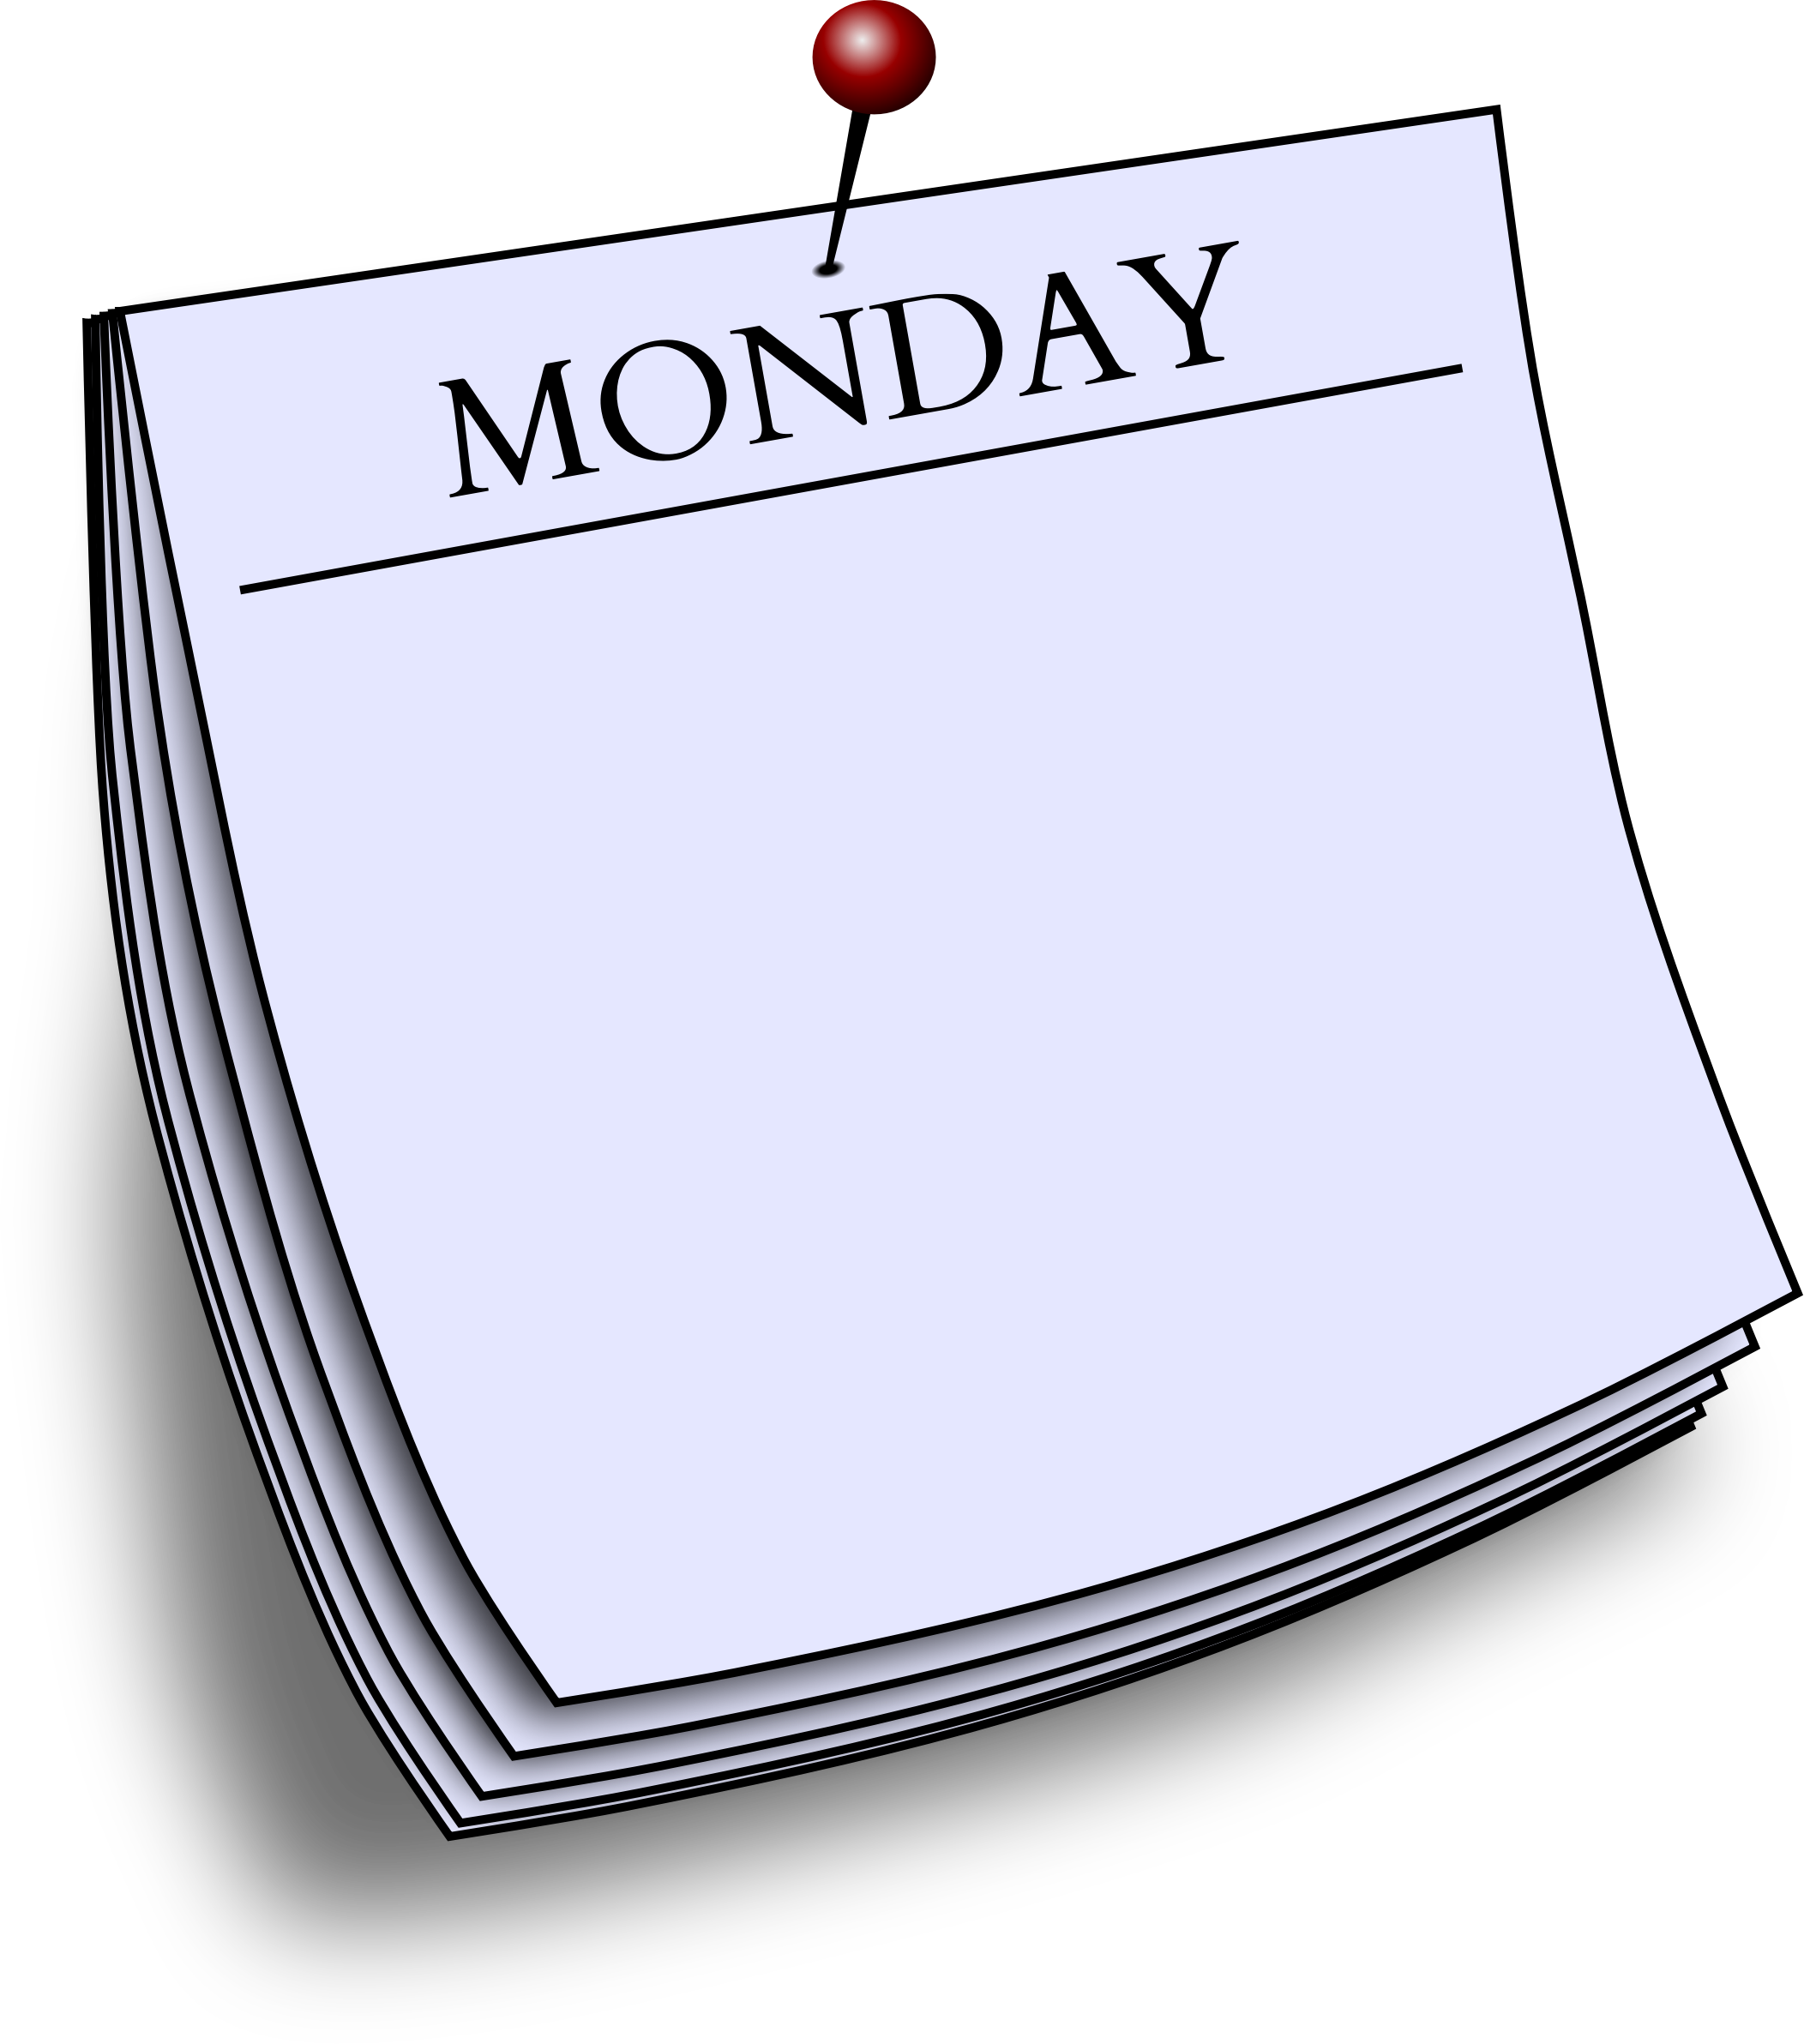 Daily note - Monday by Firkin